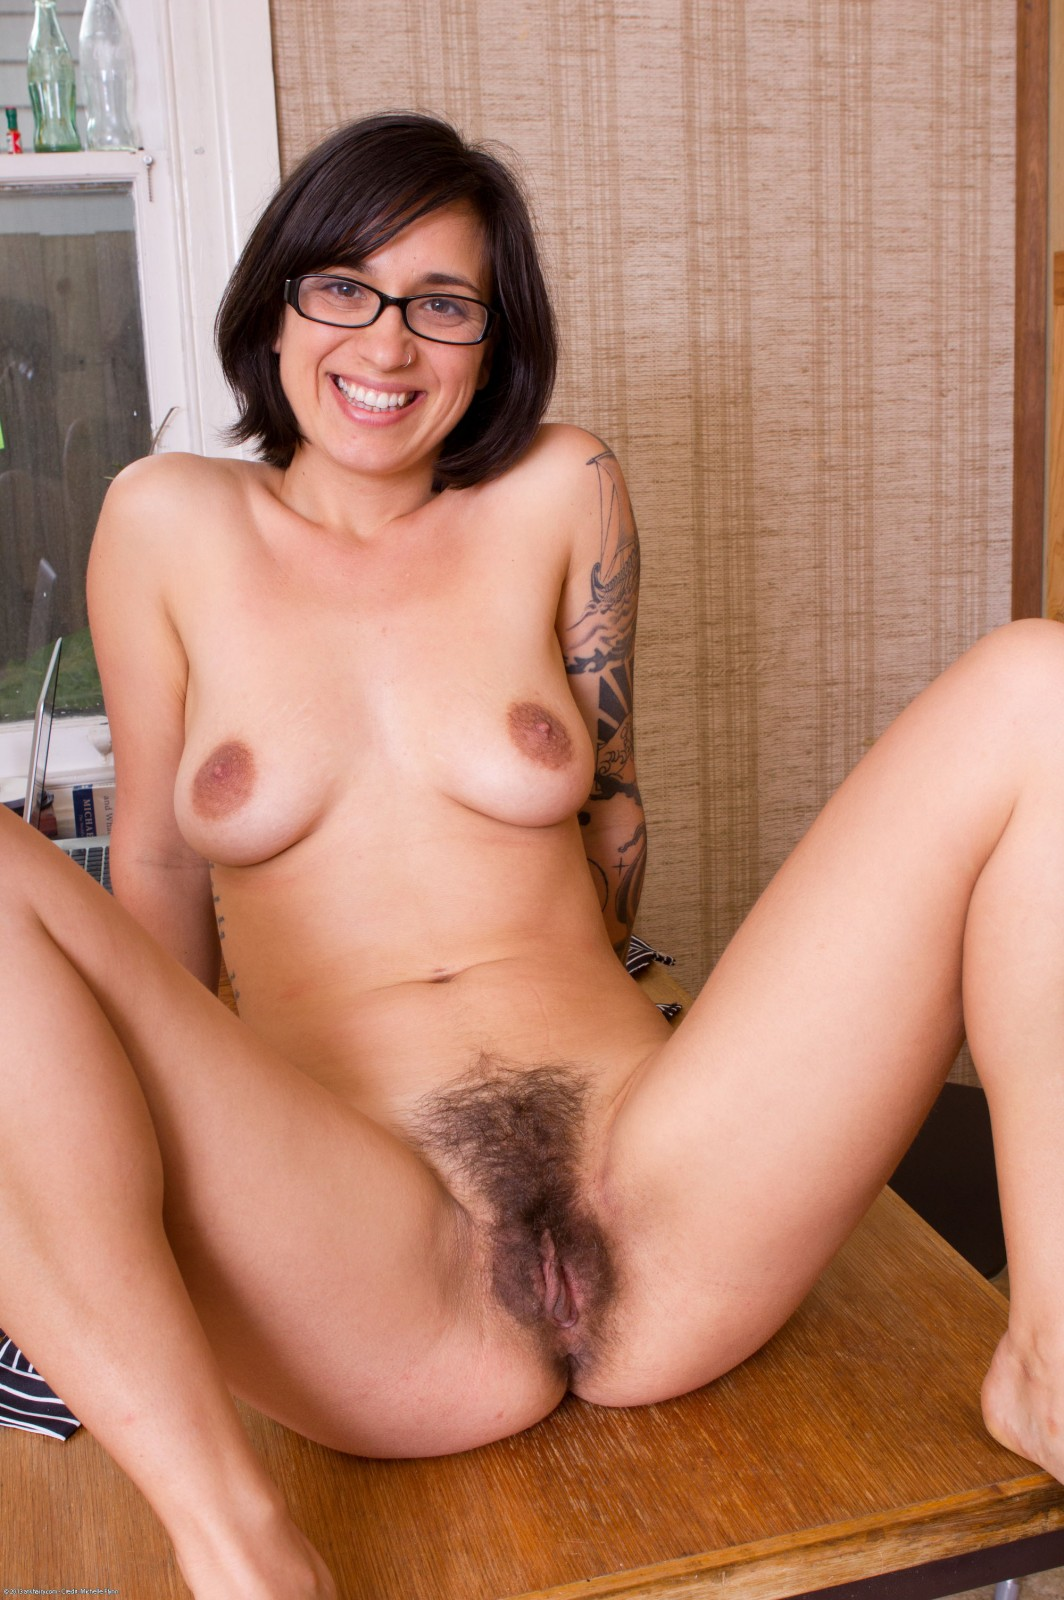 hairy milf video galleries